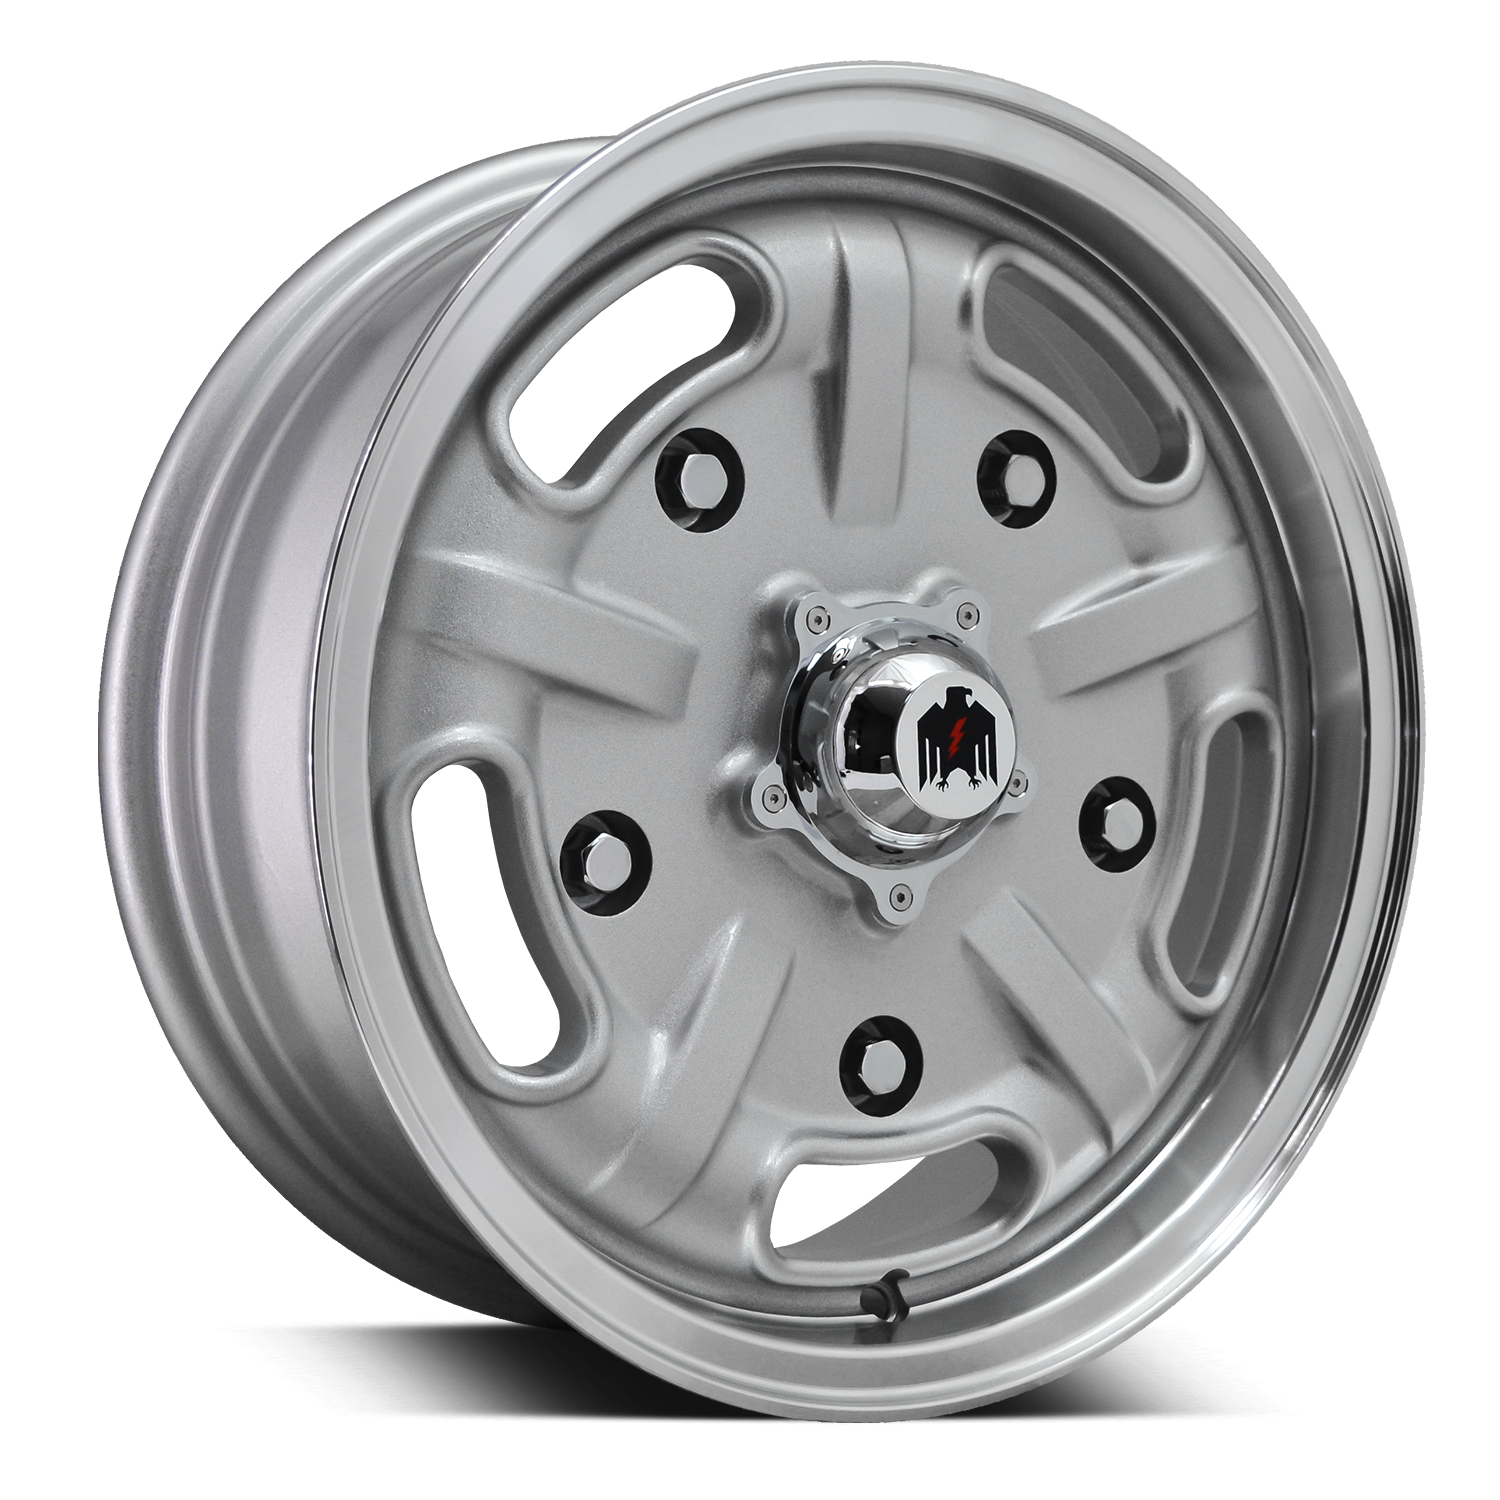 Shop the Klassik Rader Stark Wheels in 15 Inch